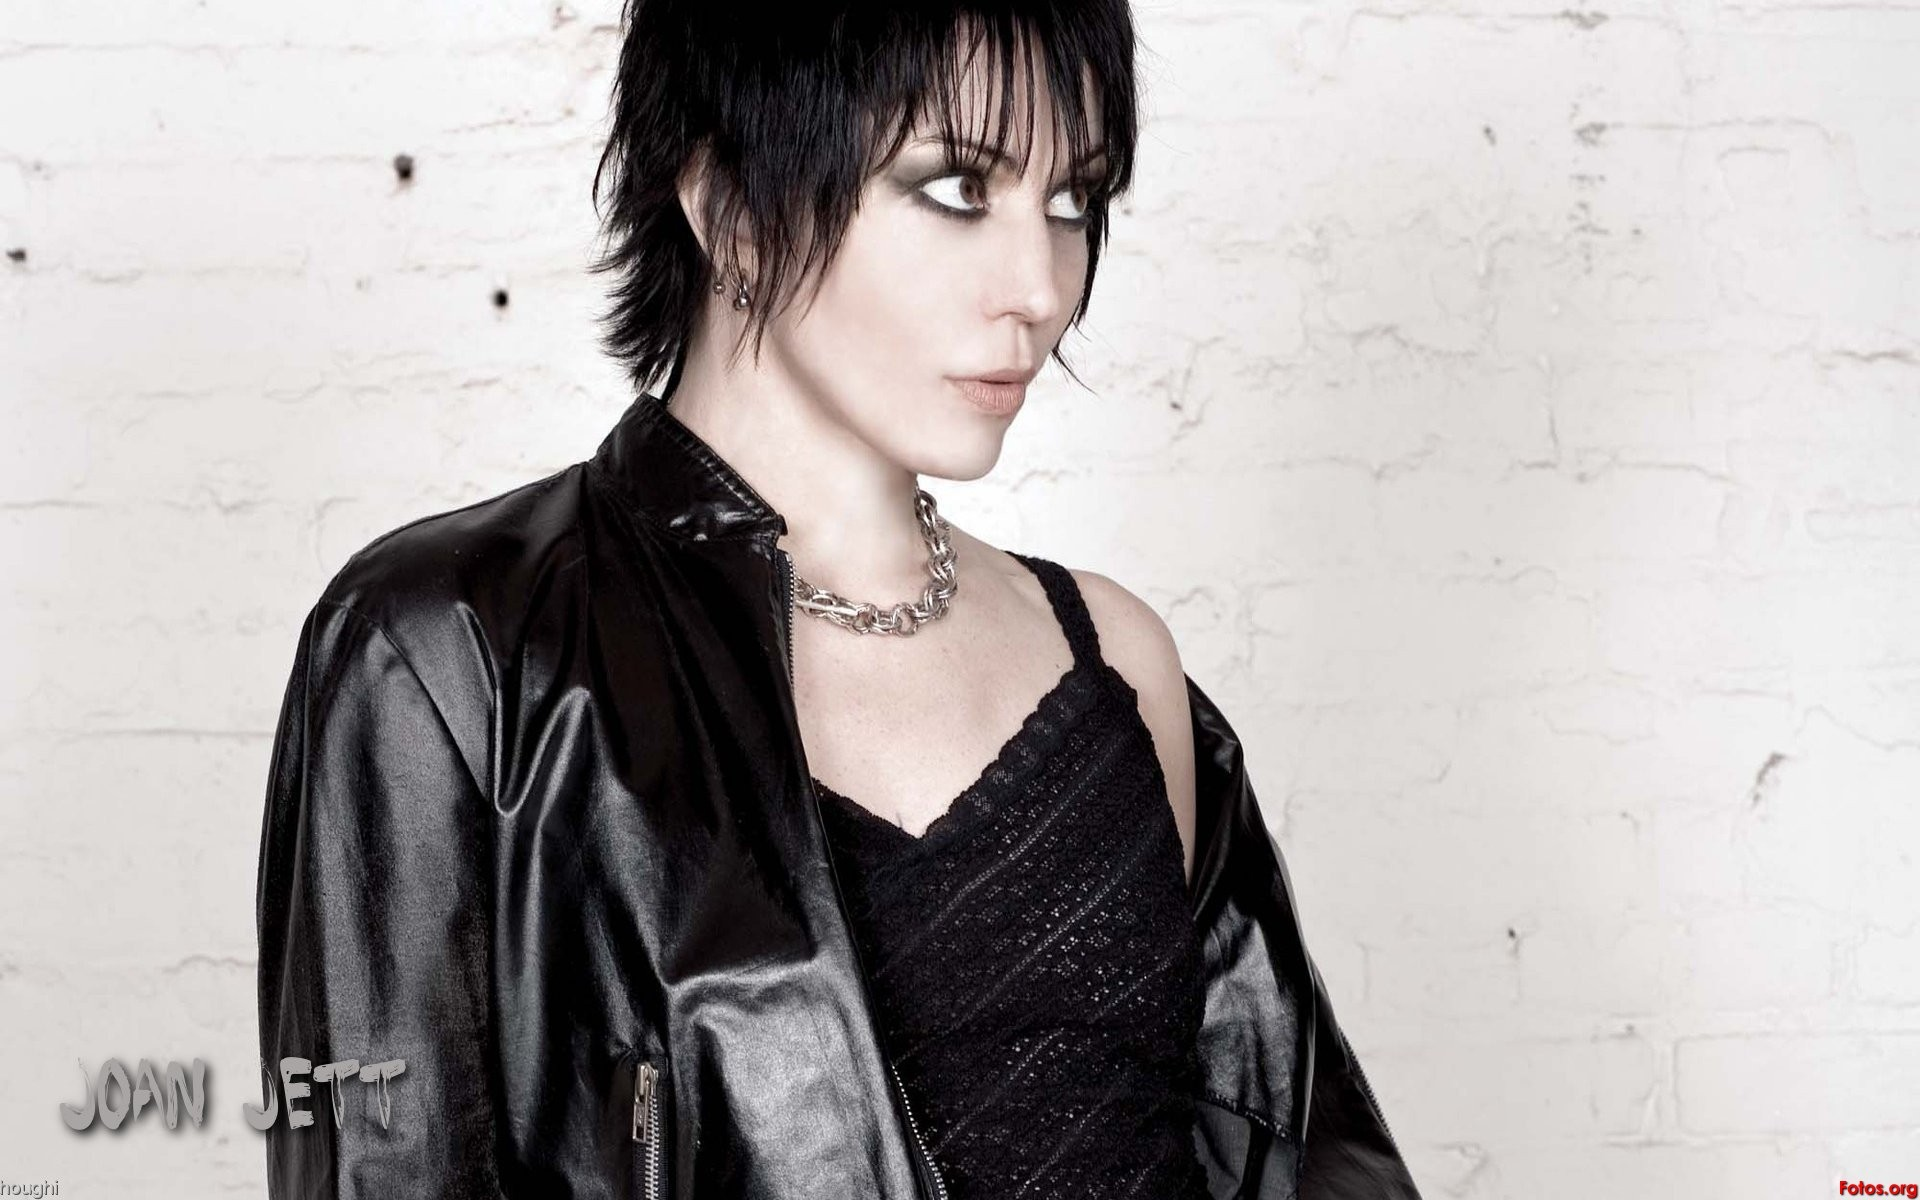 1920x1200 Joan Jett HD Wallpapers Backgrounds Wallpaper 1920×1200 Joan Jett Wallpapers  (20 Wallpapers)